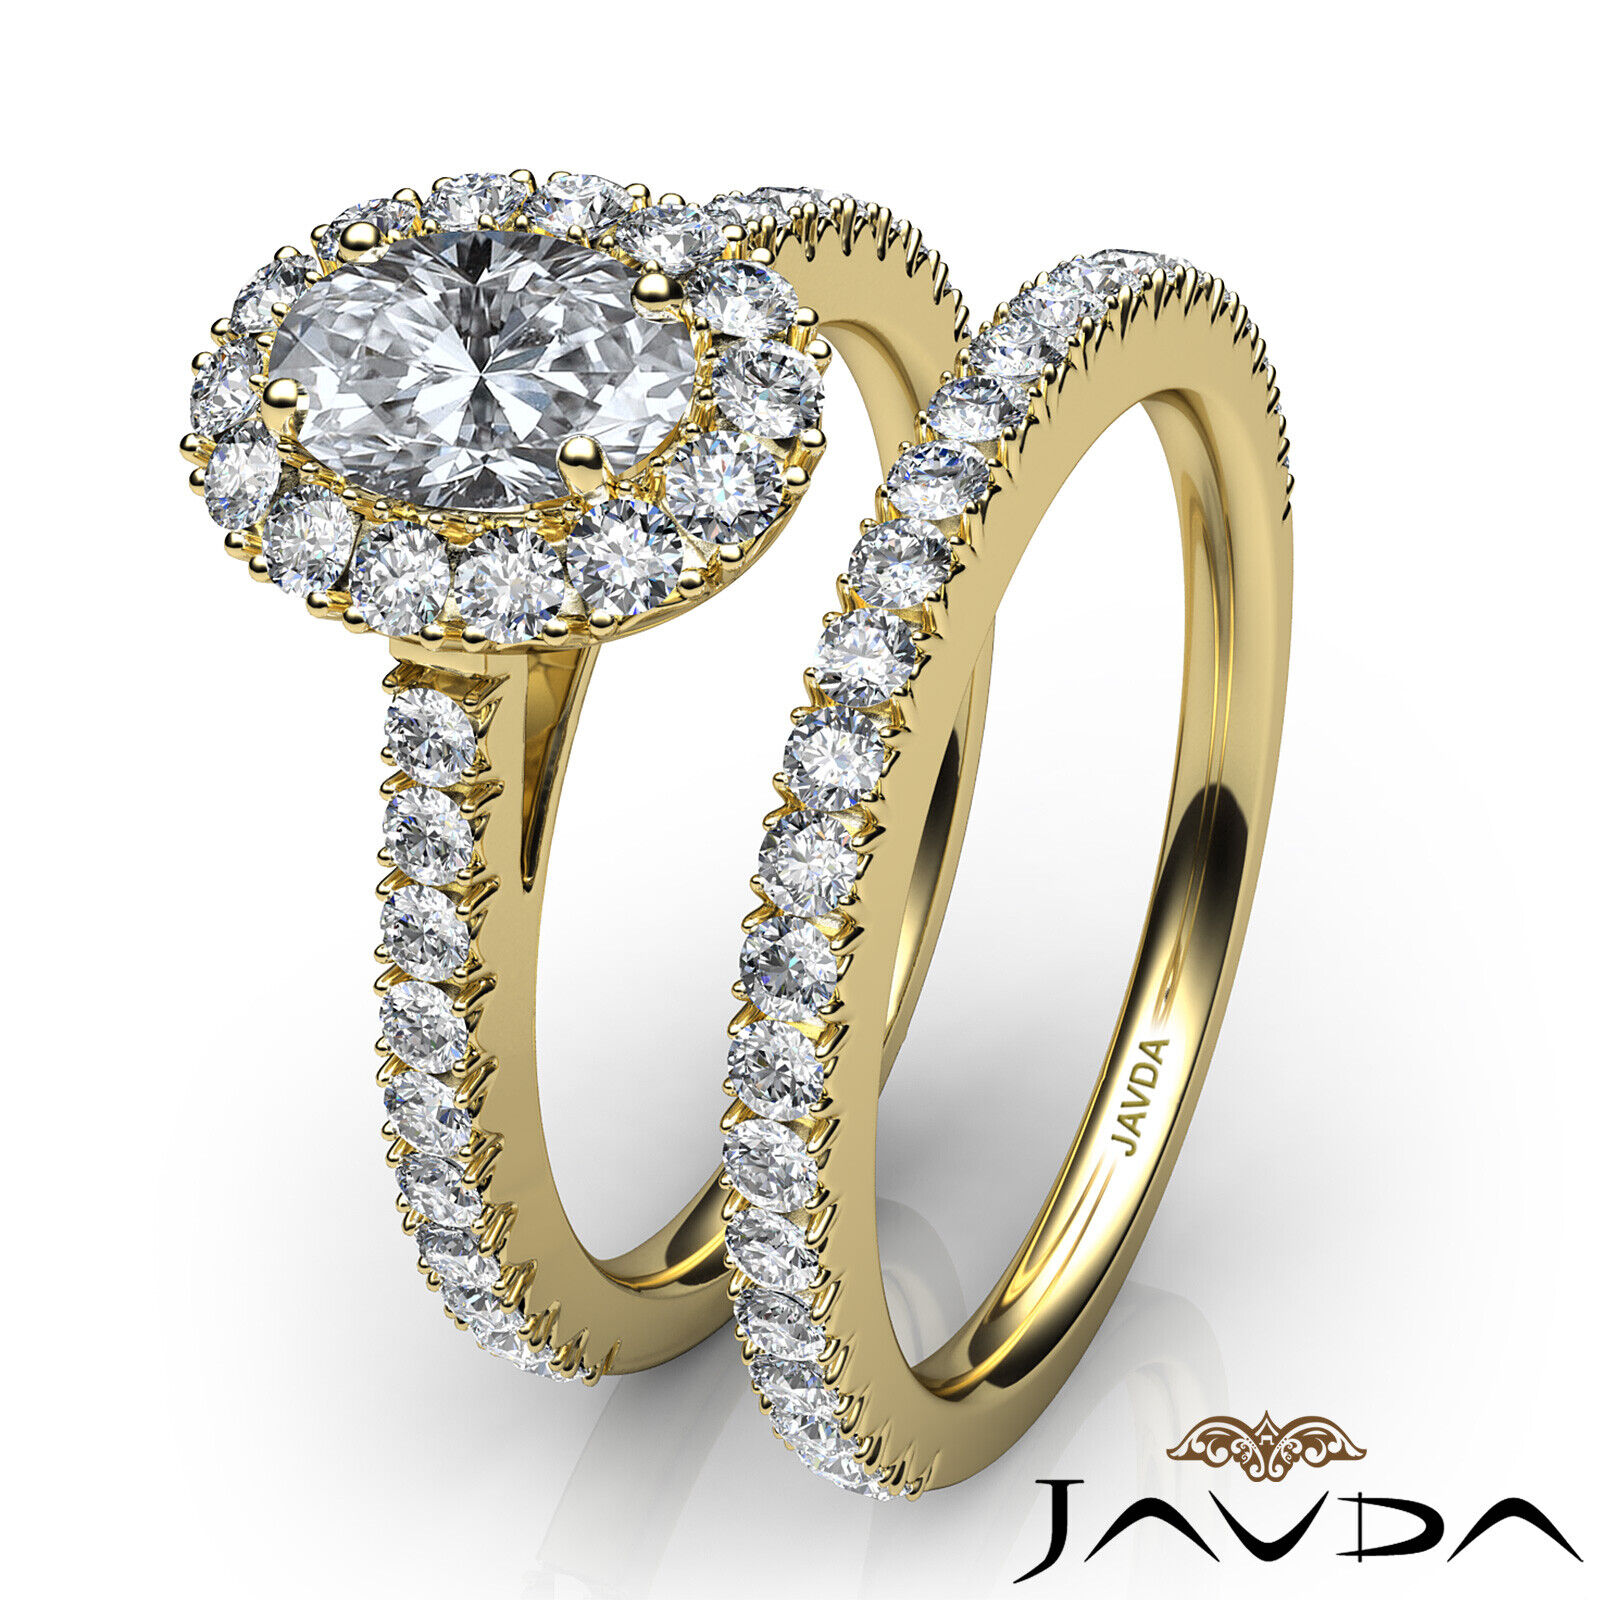 2.21ctw Halo Bridal French Pave Oval Diamond Engagement Ring GIA F-VVS2 W Gold 11